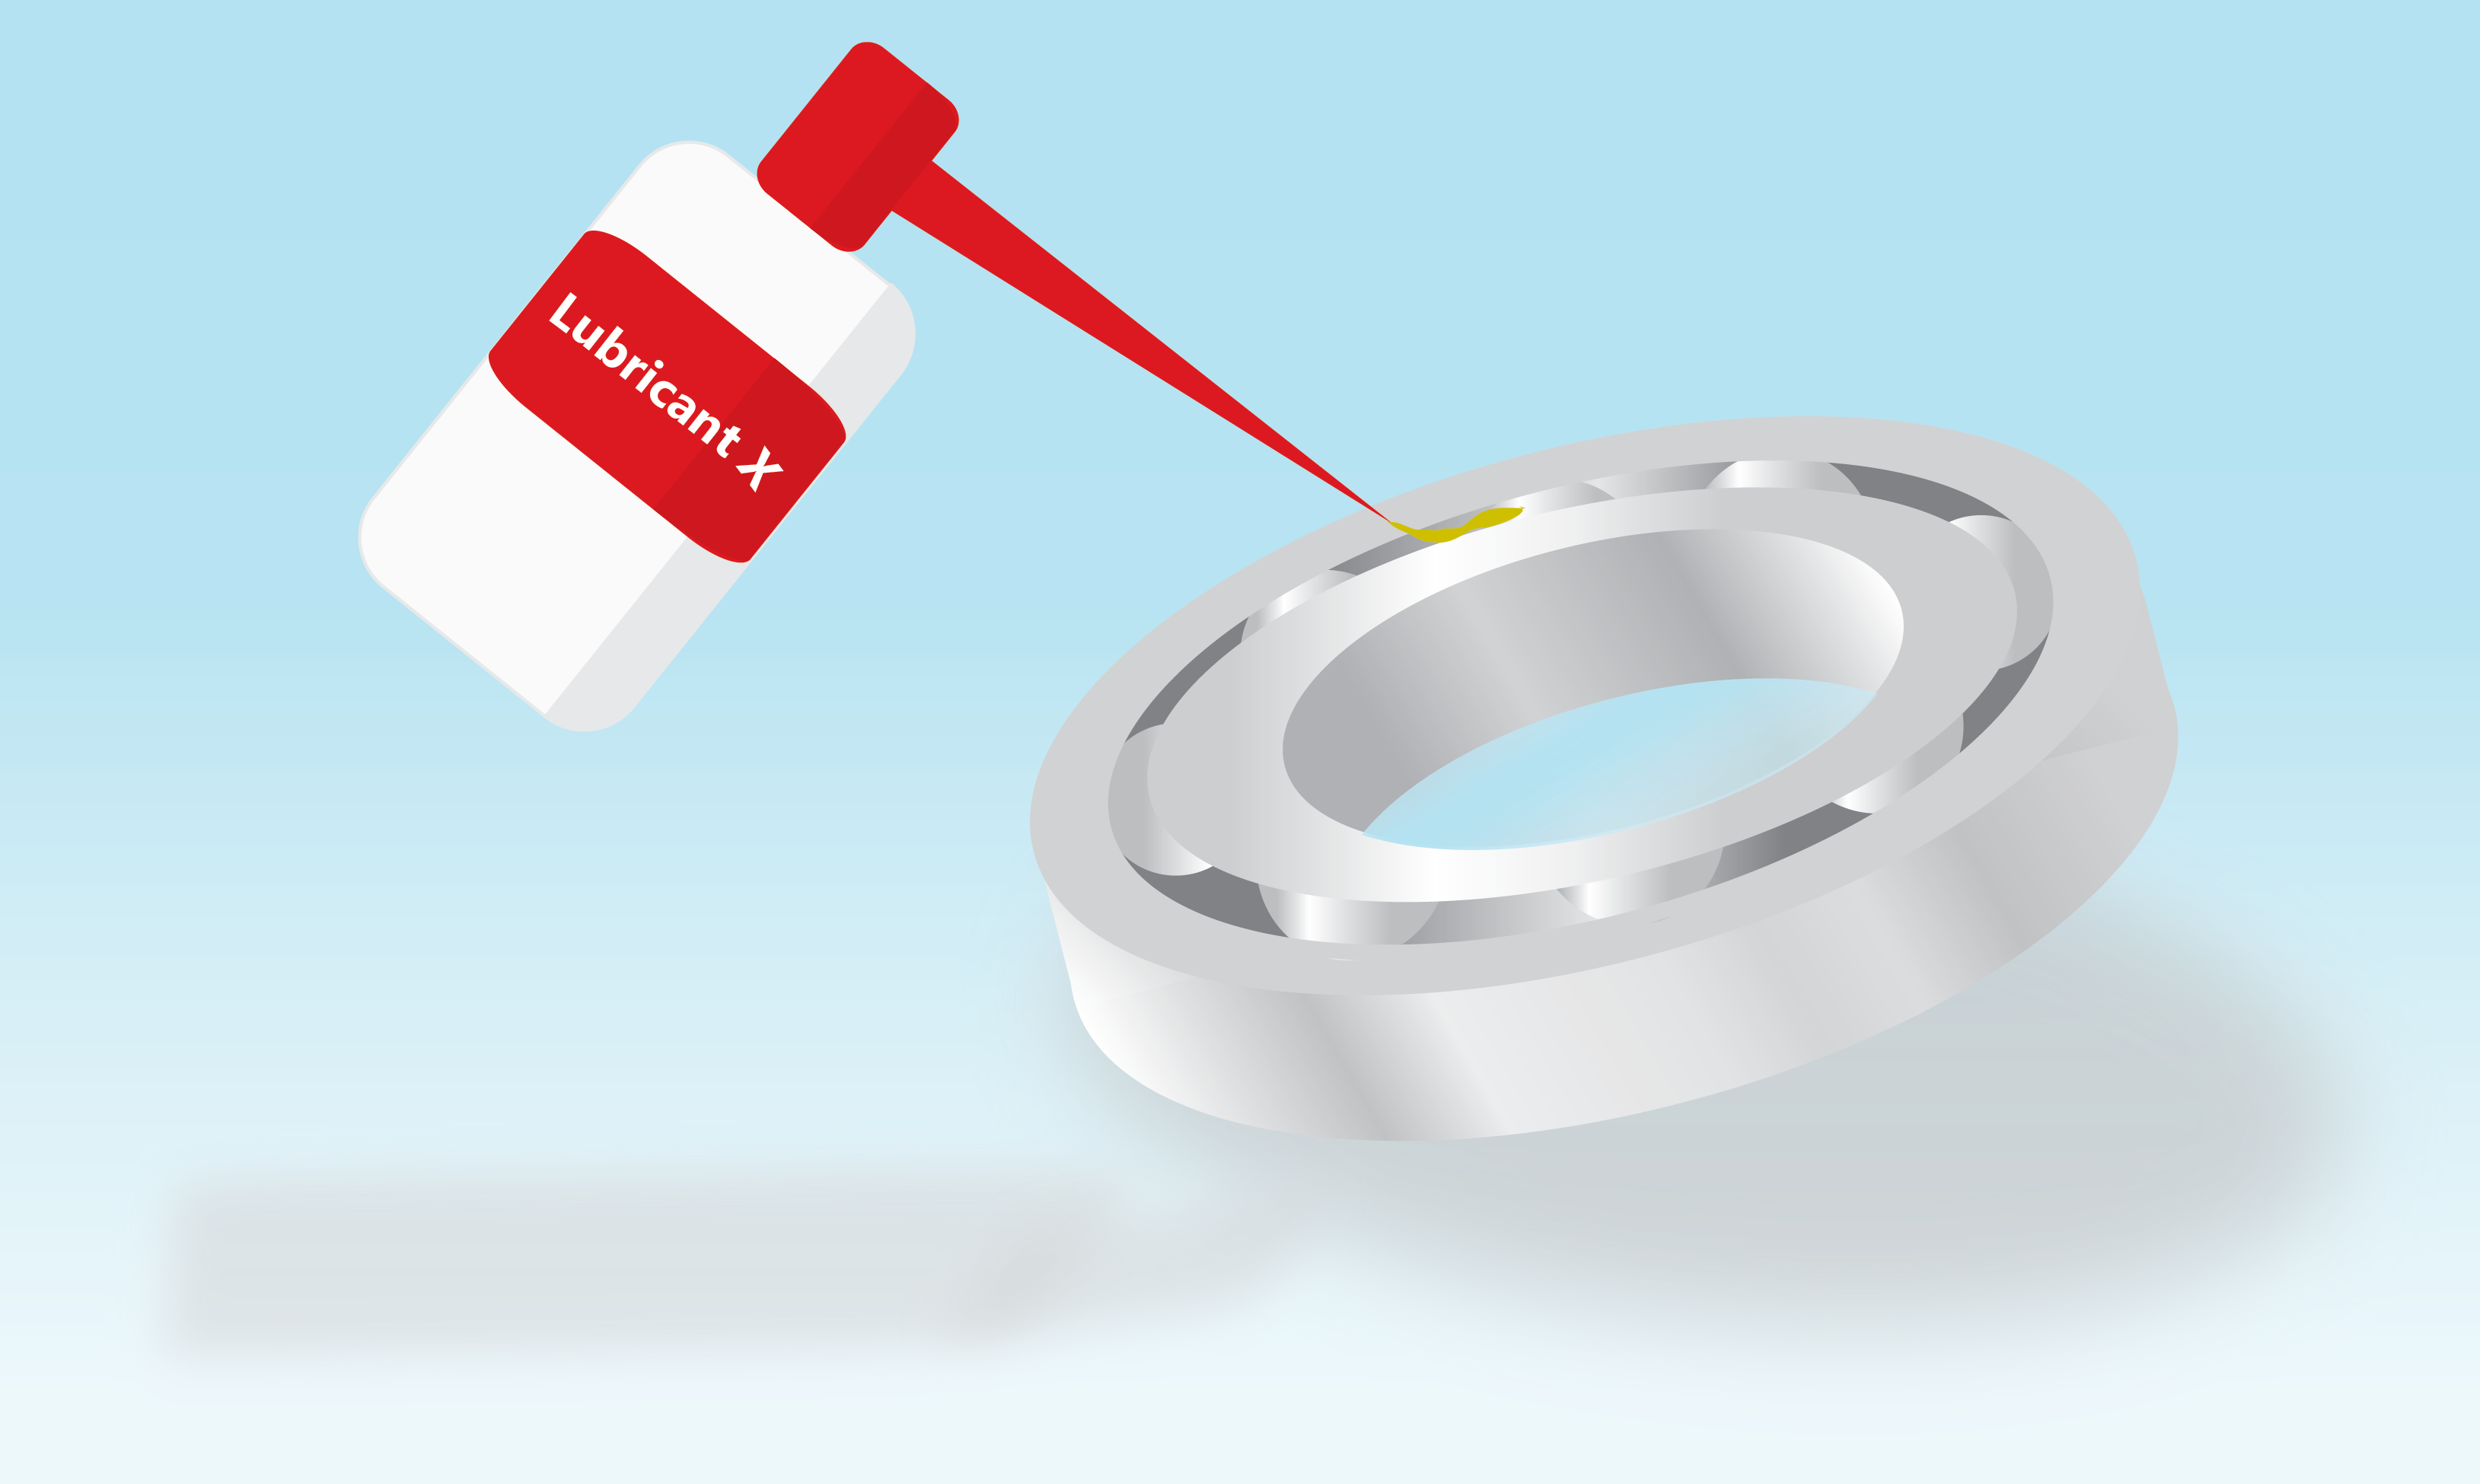 Illustration shows a lubricant applying grease on a ball bearing